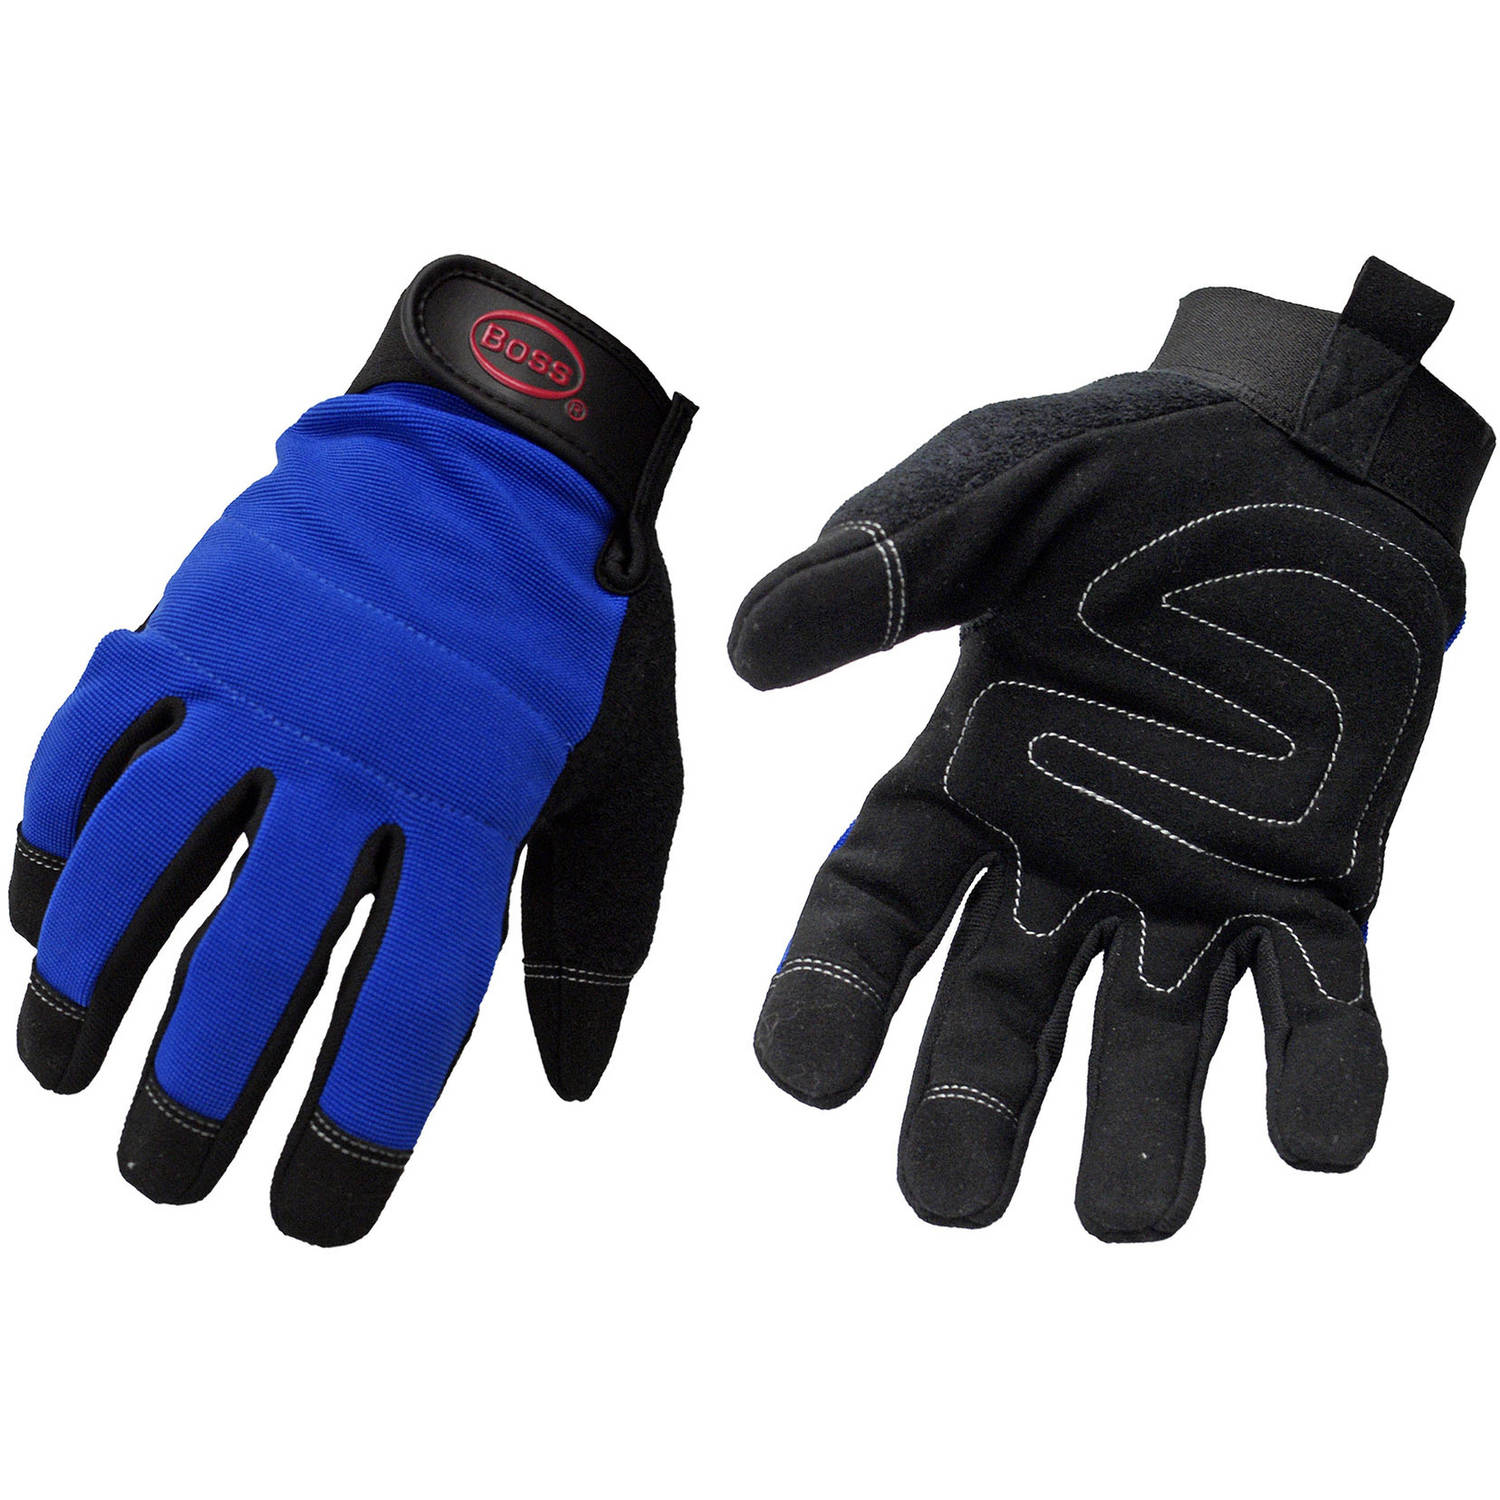 Boss Gloves 5205M Medium Synthetic Leather Gloves